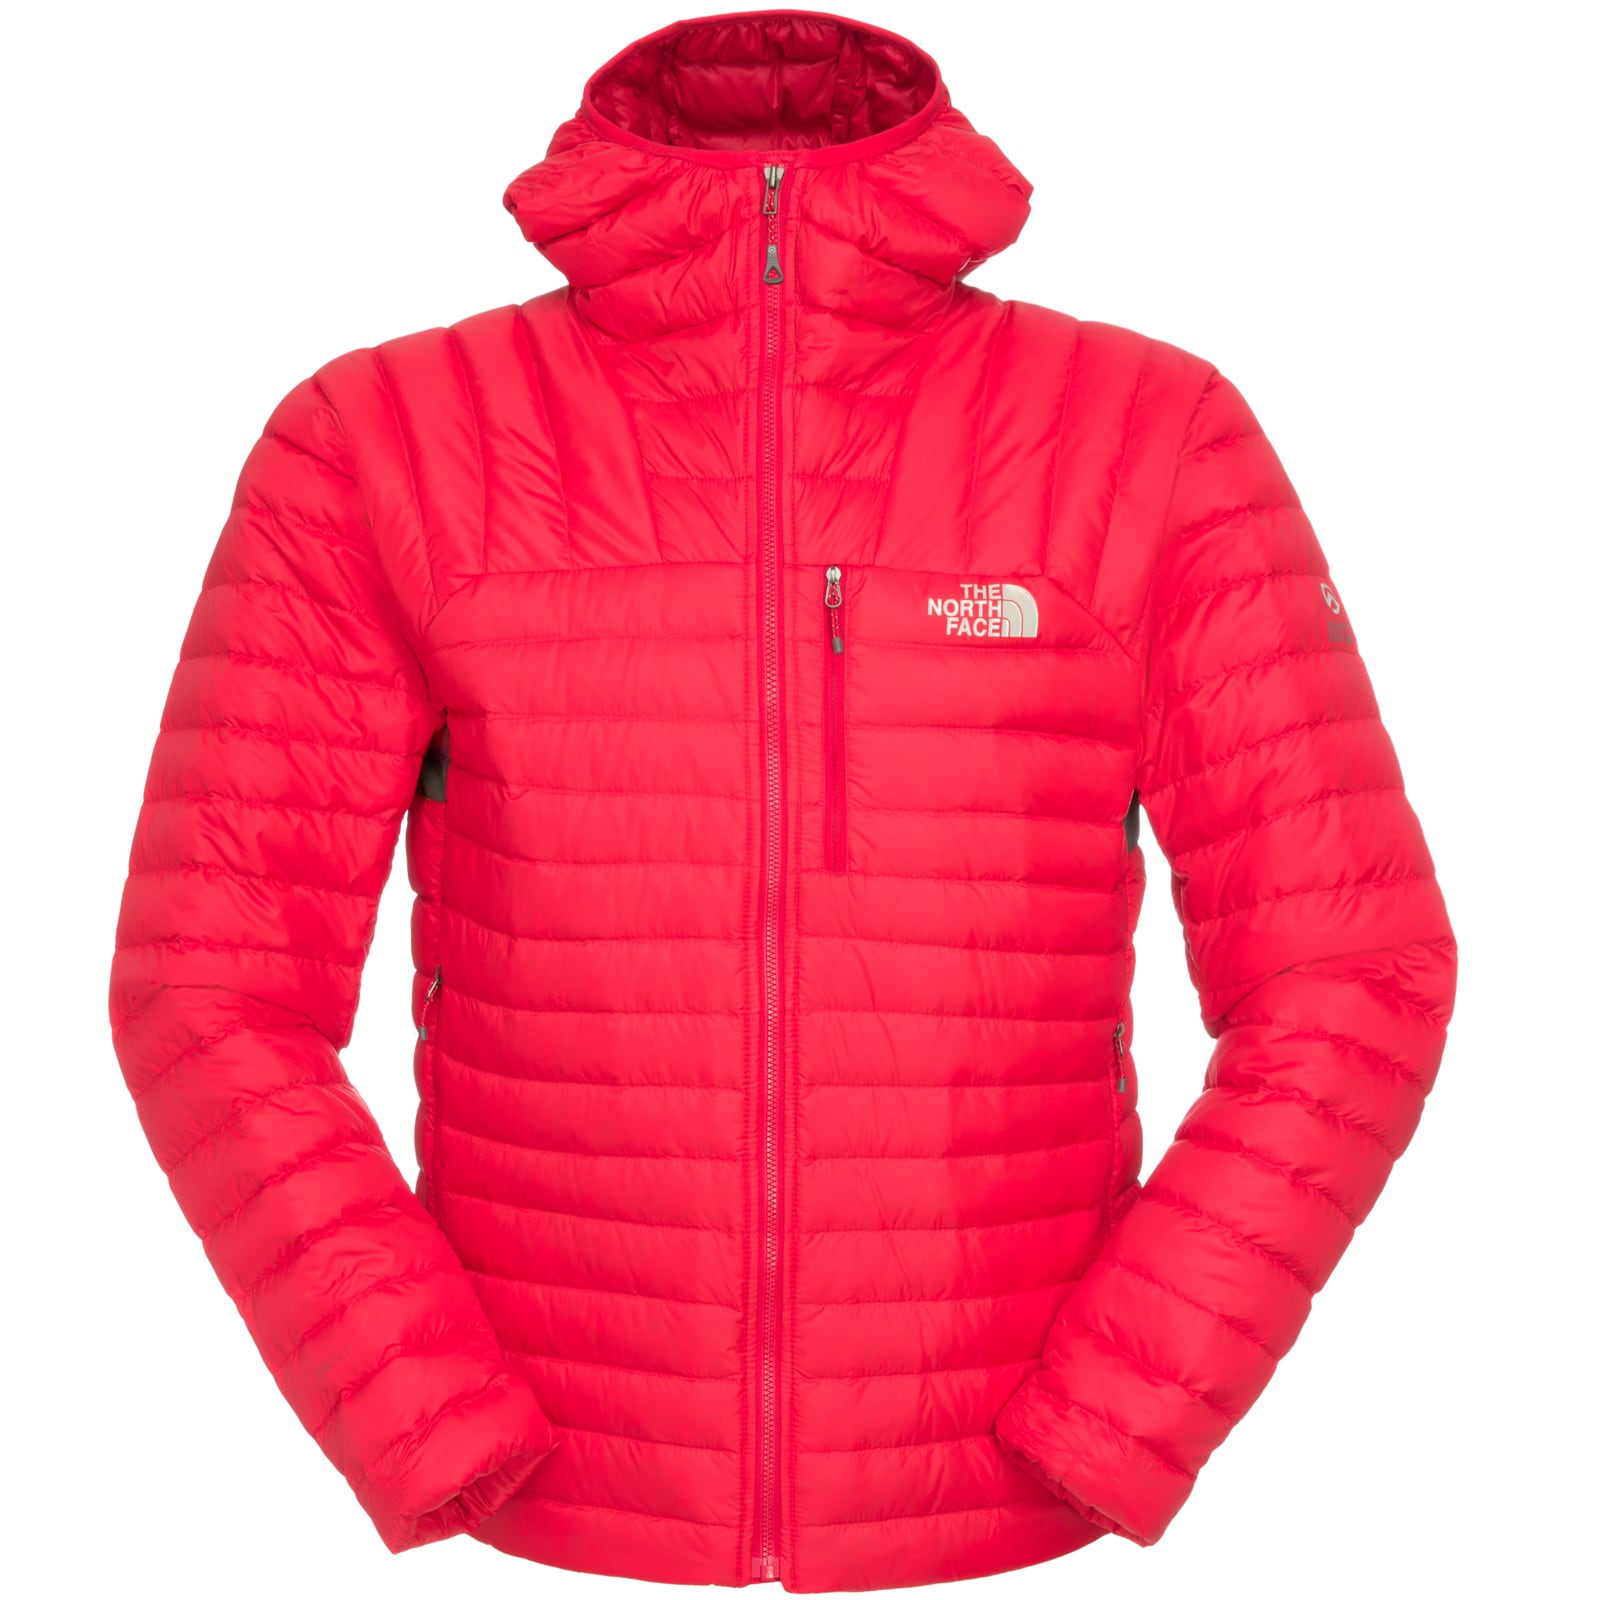 the north face catalyst micro dunjakke herre, The North Face